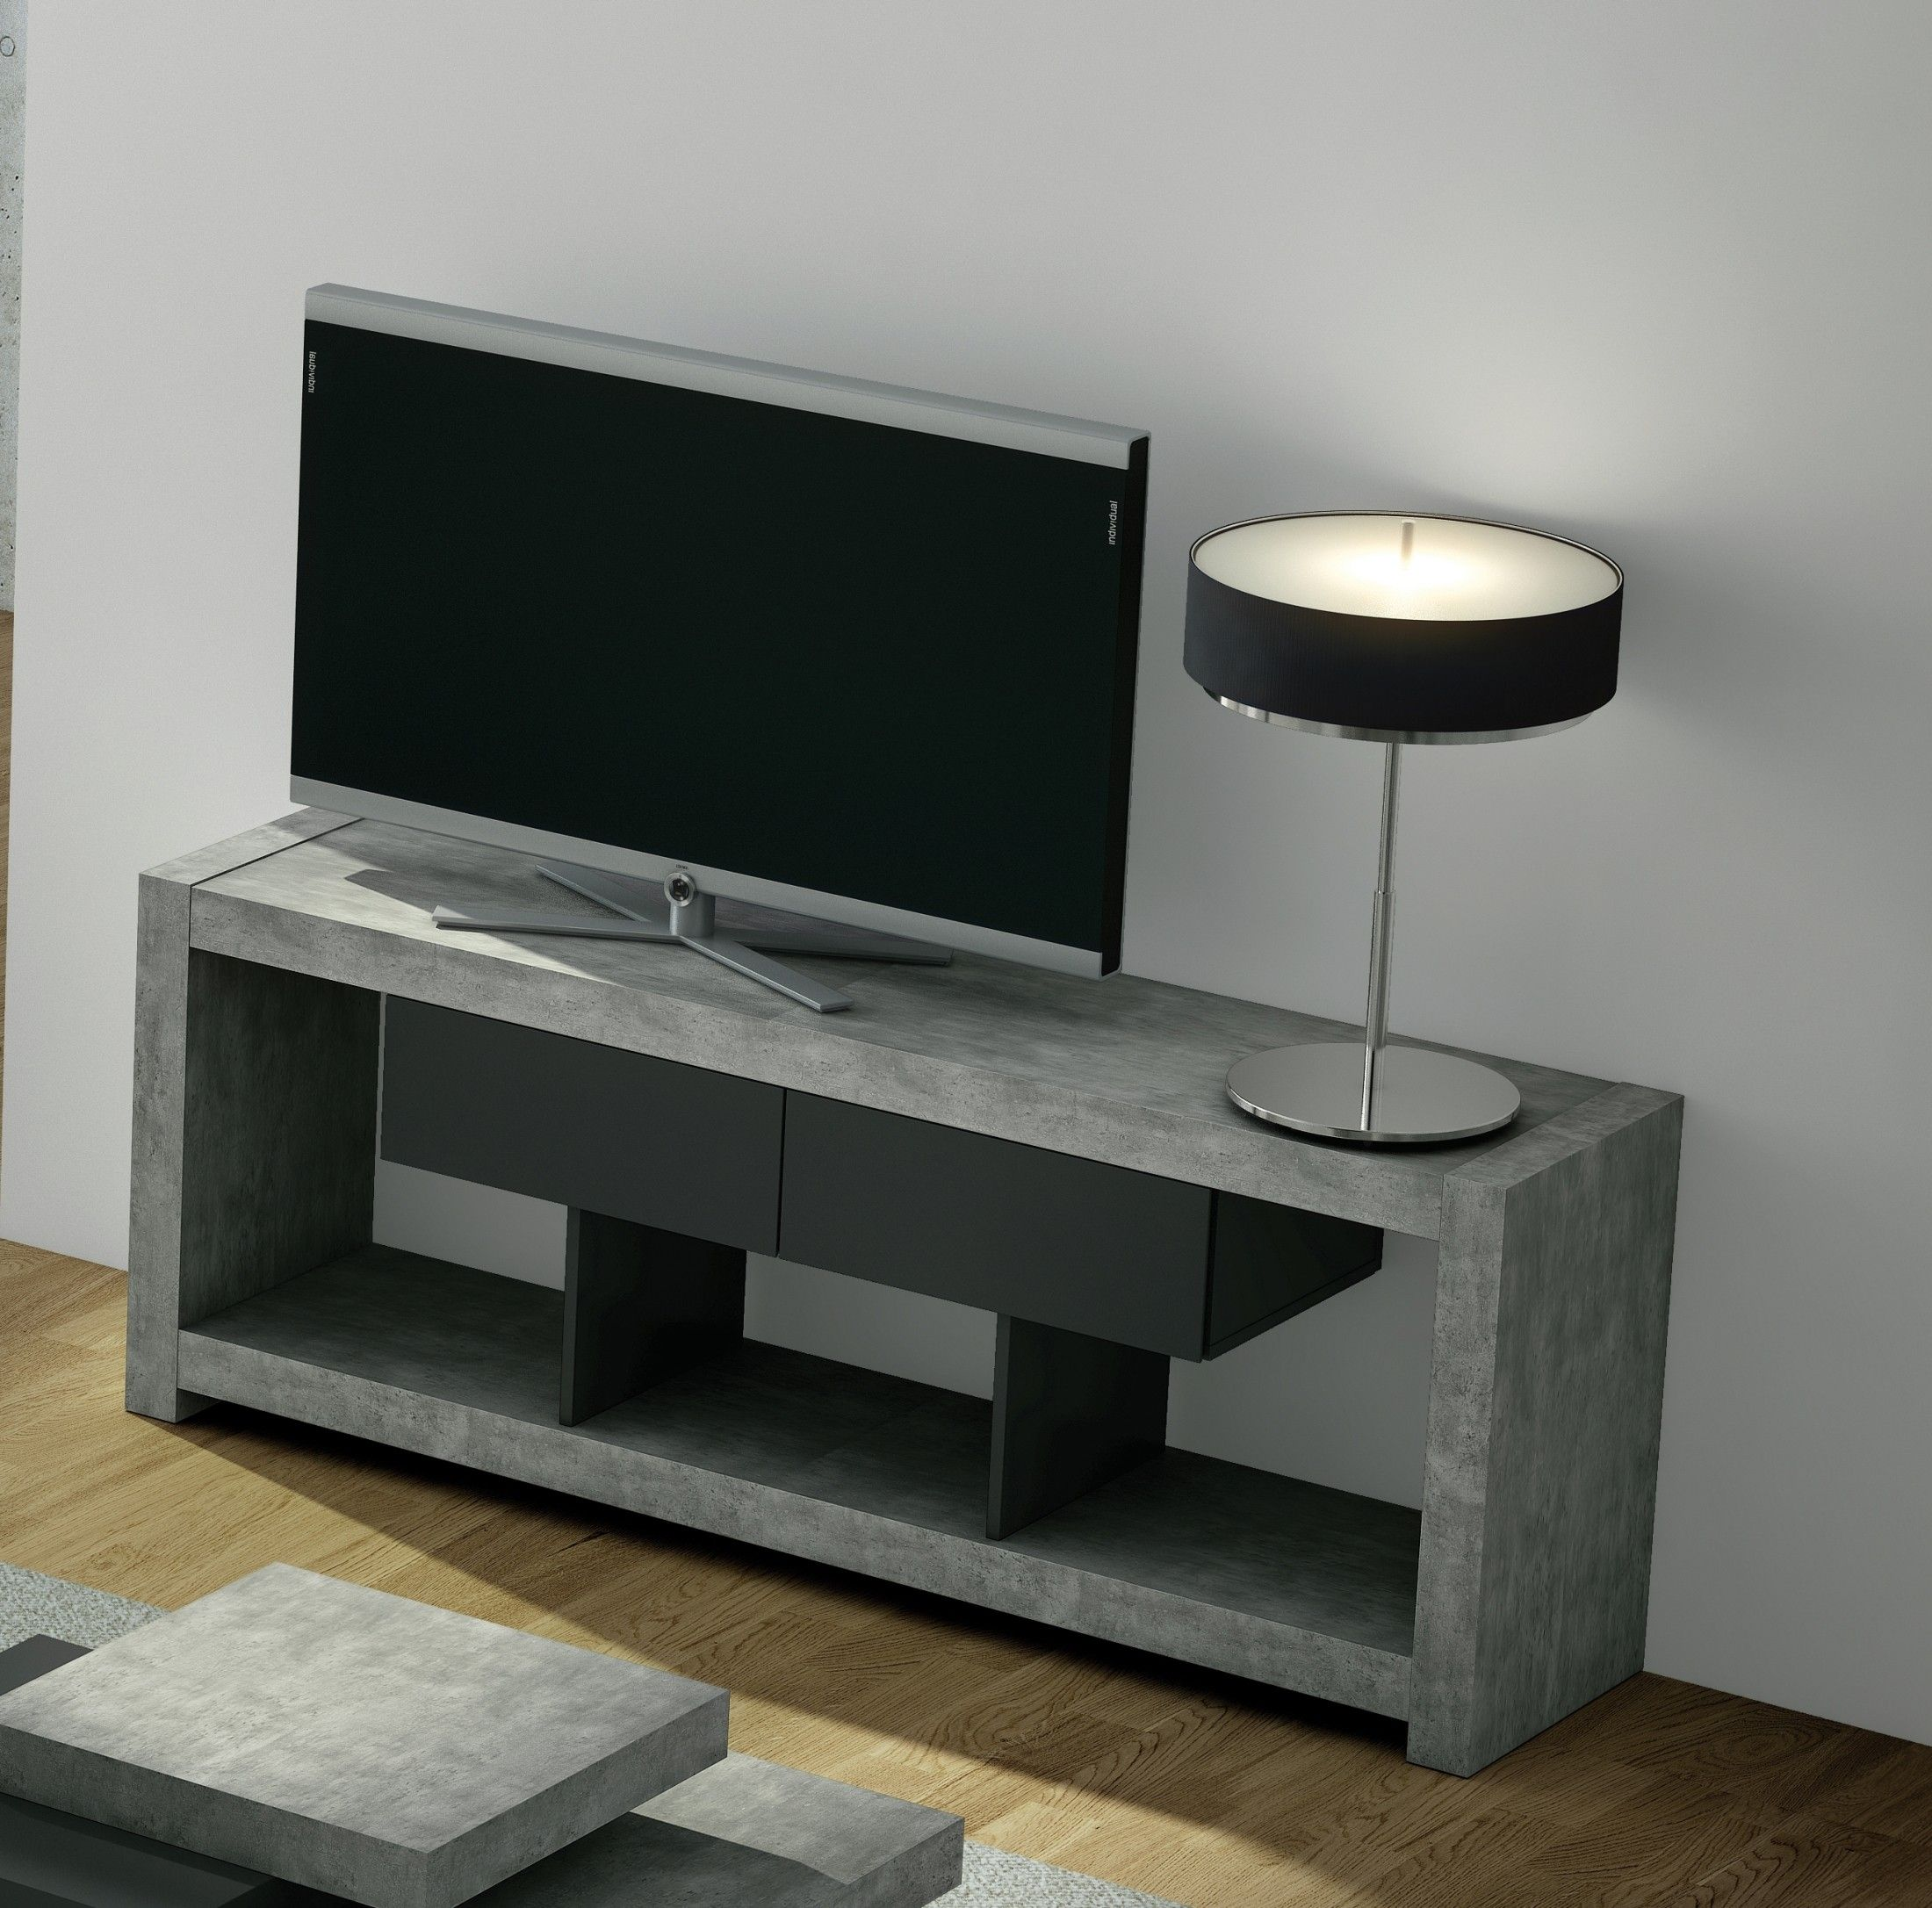 Nara Concrete Tv Console In 2019 Bedroom Stand